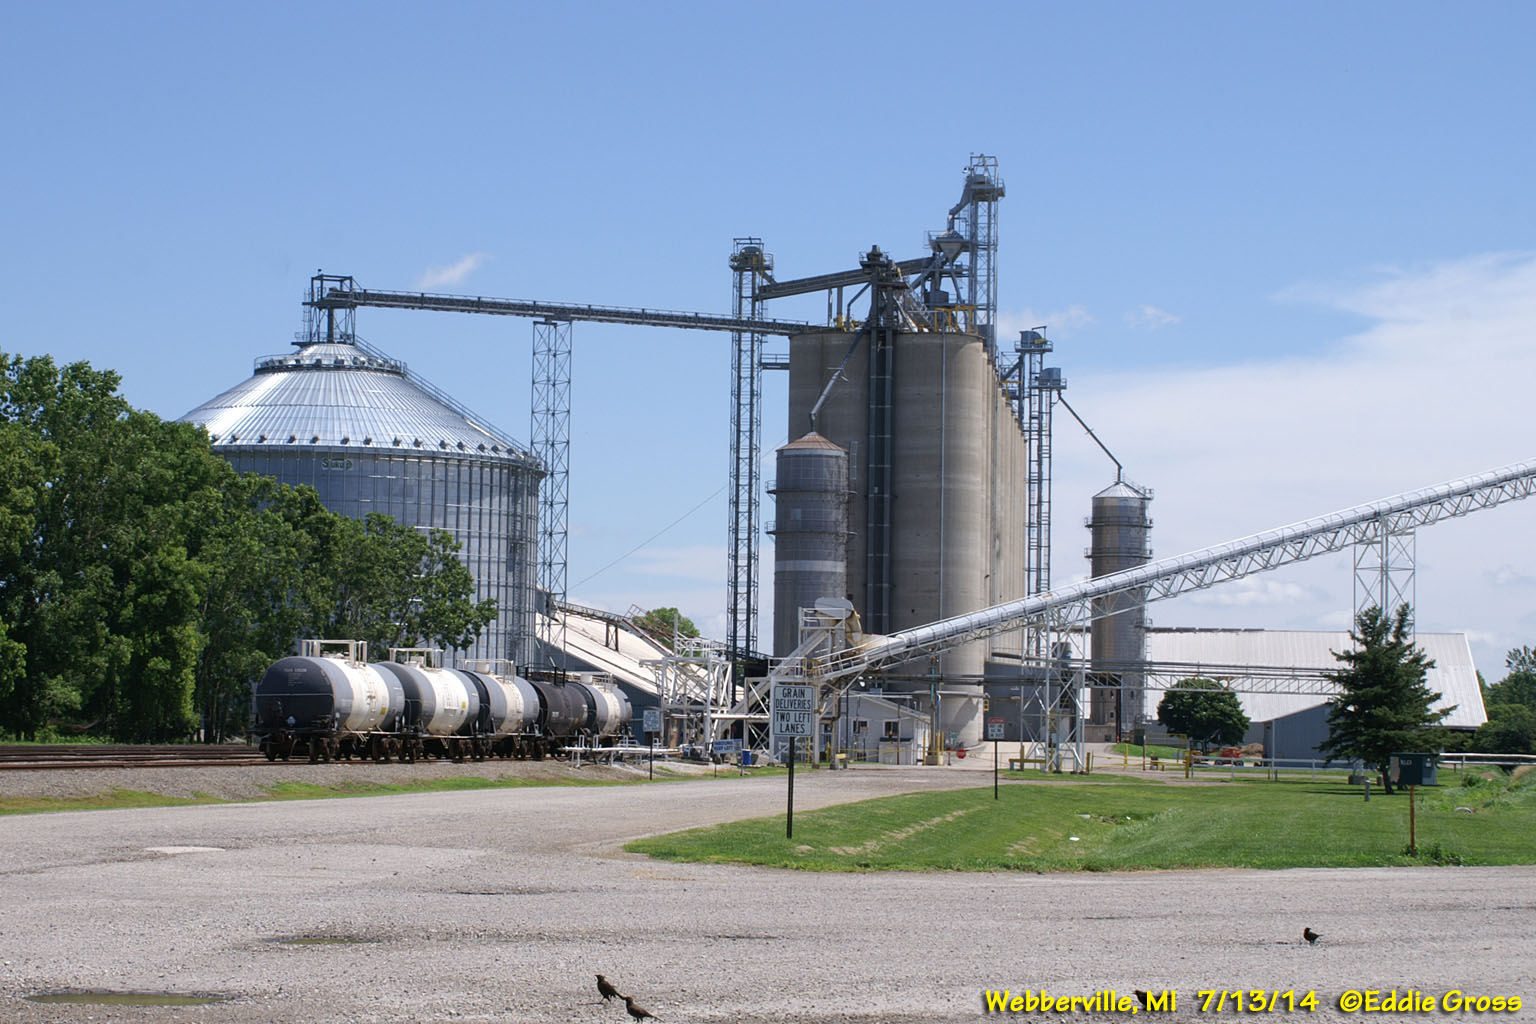 Anyone interested in scratch building a larger 90s grain elevator